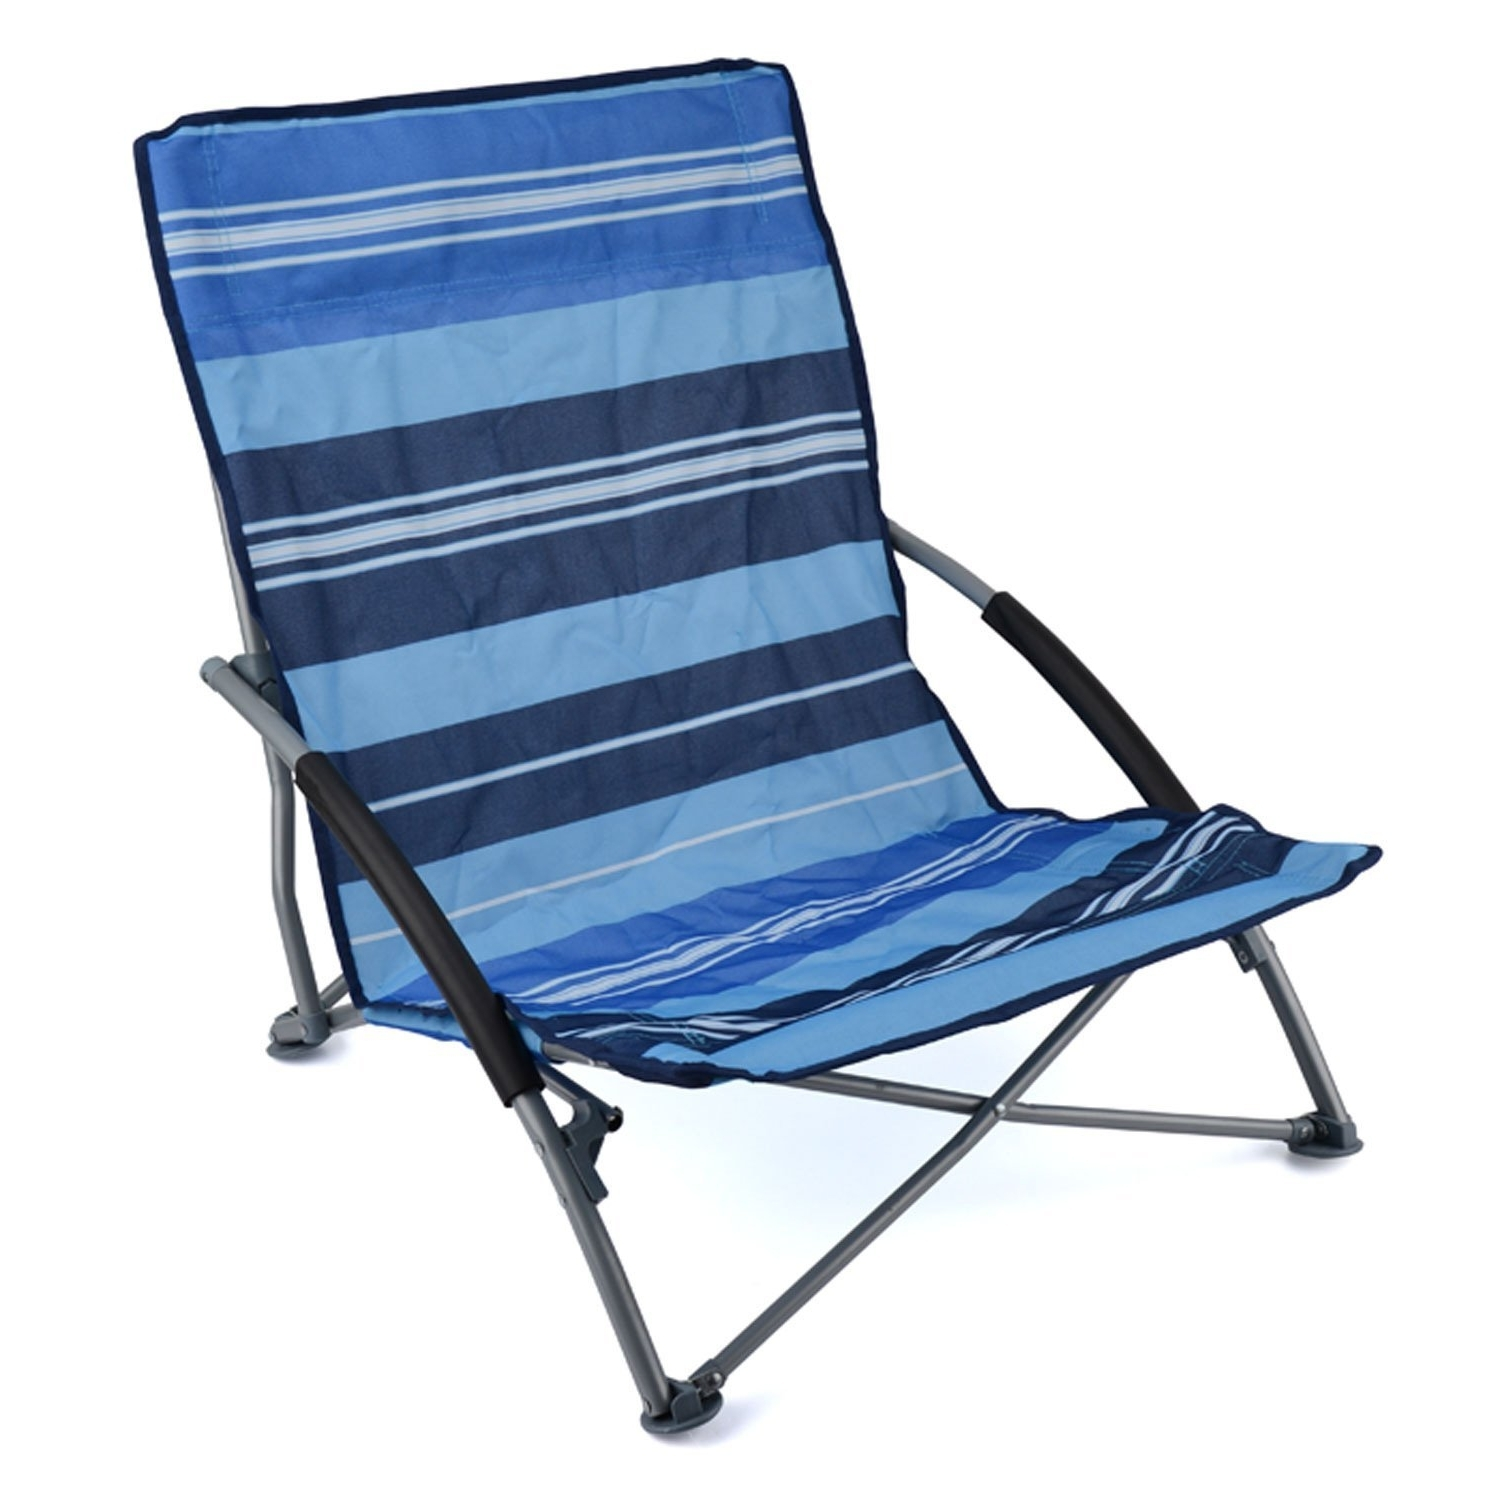 Convertible Chair : With Footrest Folding Bag Chairs Padded Pertaining To Widely Used Lightweight Chaise Lounge Chairs (View 3 of 15)